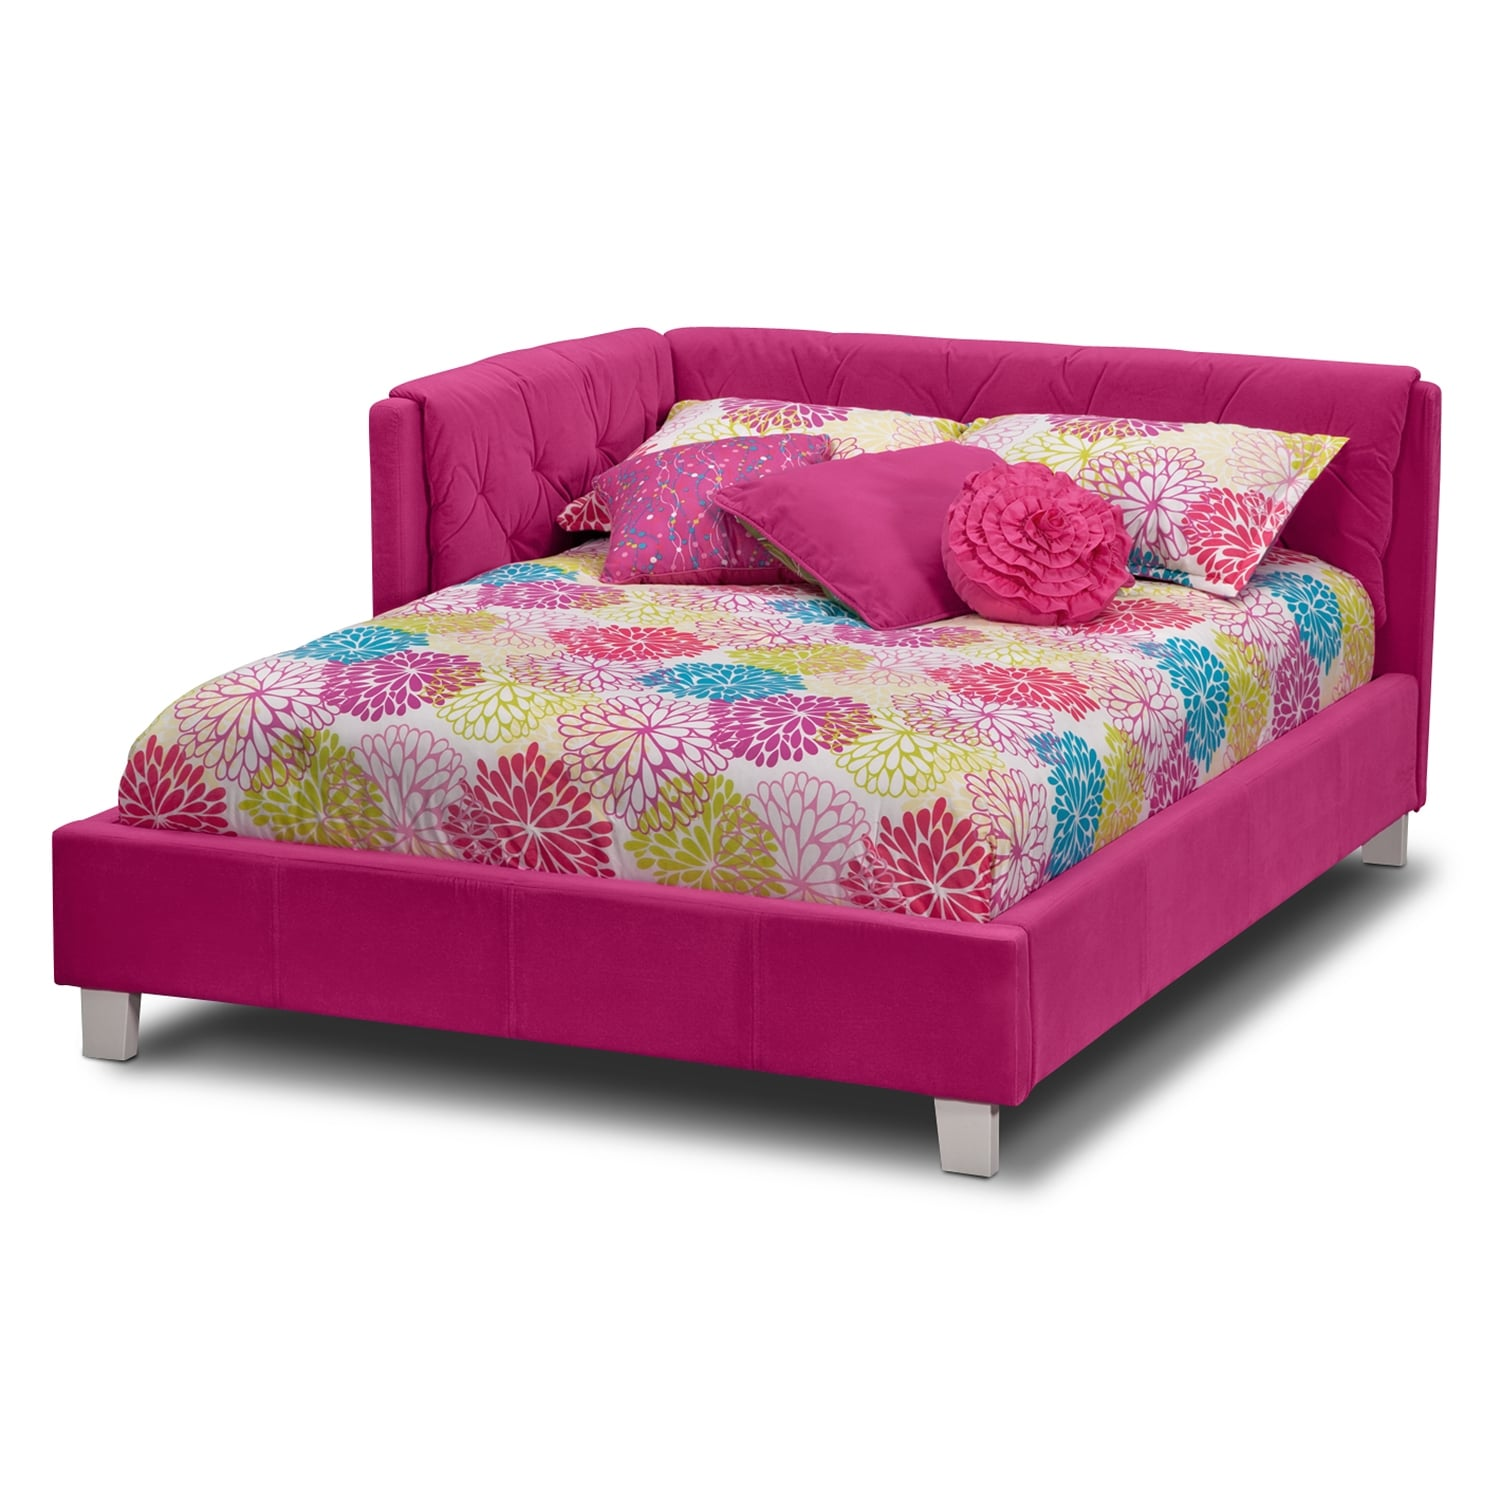 Jordan Full Corner Bed American Signature Furniture